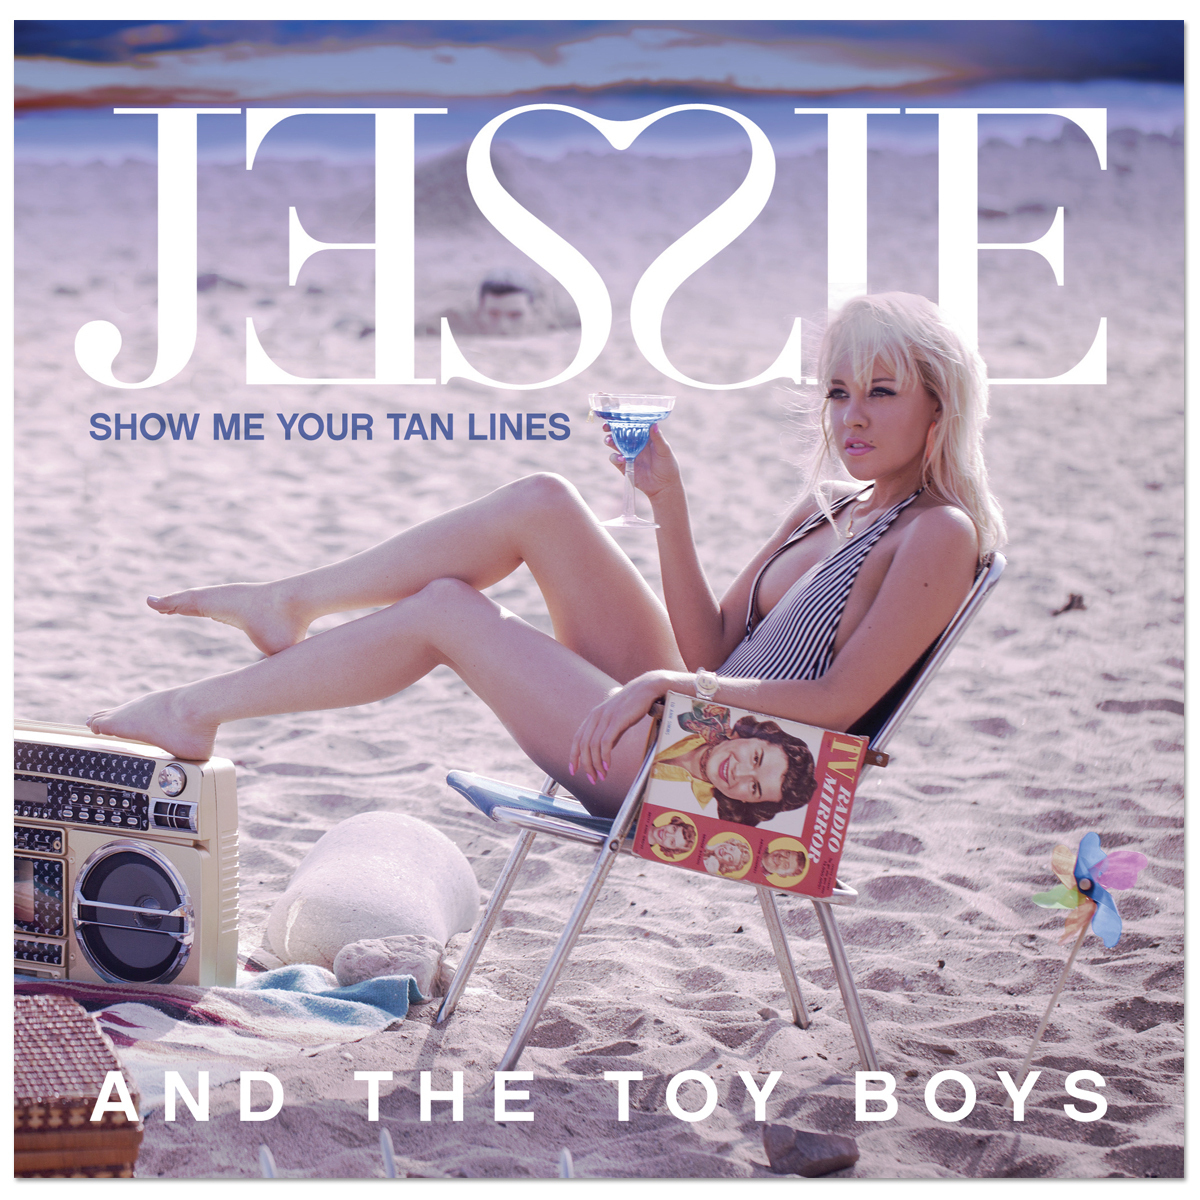 Jessie and the Toy Boys - Show Me Your Tan Lines EP CD